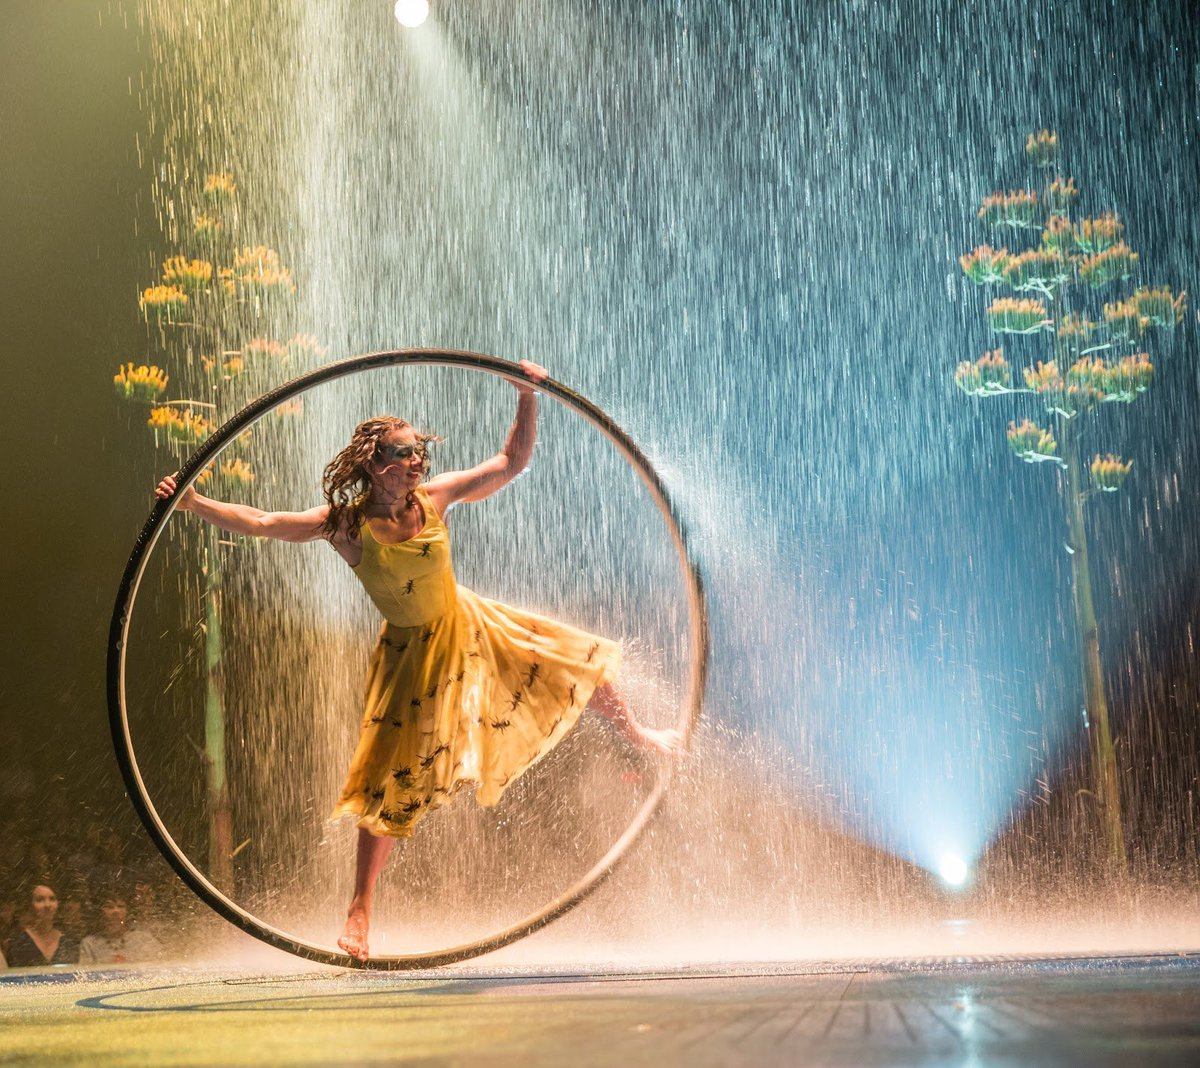 My review of #Luzia 'A dive into the real Mexico'  http://www.fromanother0.com/2018/03/luzia-dive-into-real-mexico.html?spref=tw… #FromAnother0 #OC #CostaMesa #CirqueduSoleil @Cirquepic.twitter.com/B1U7k9iu4V